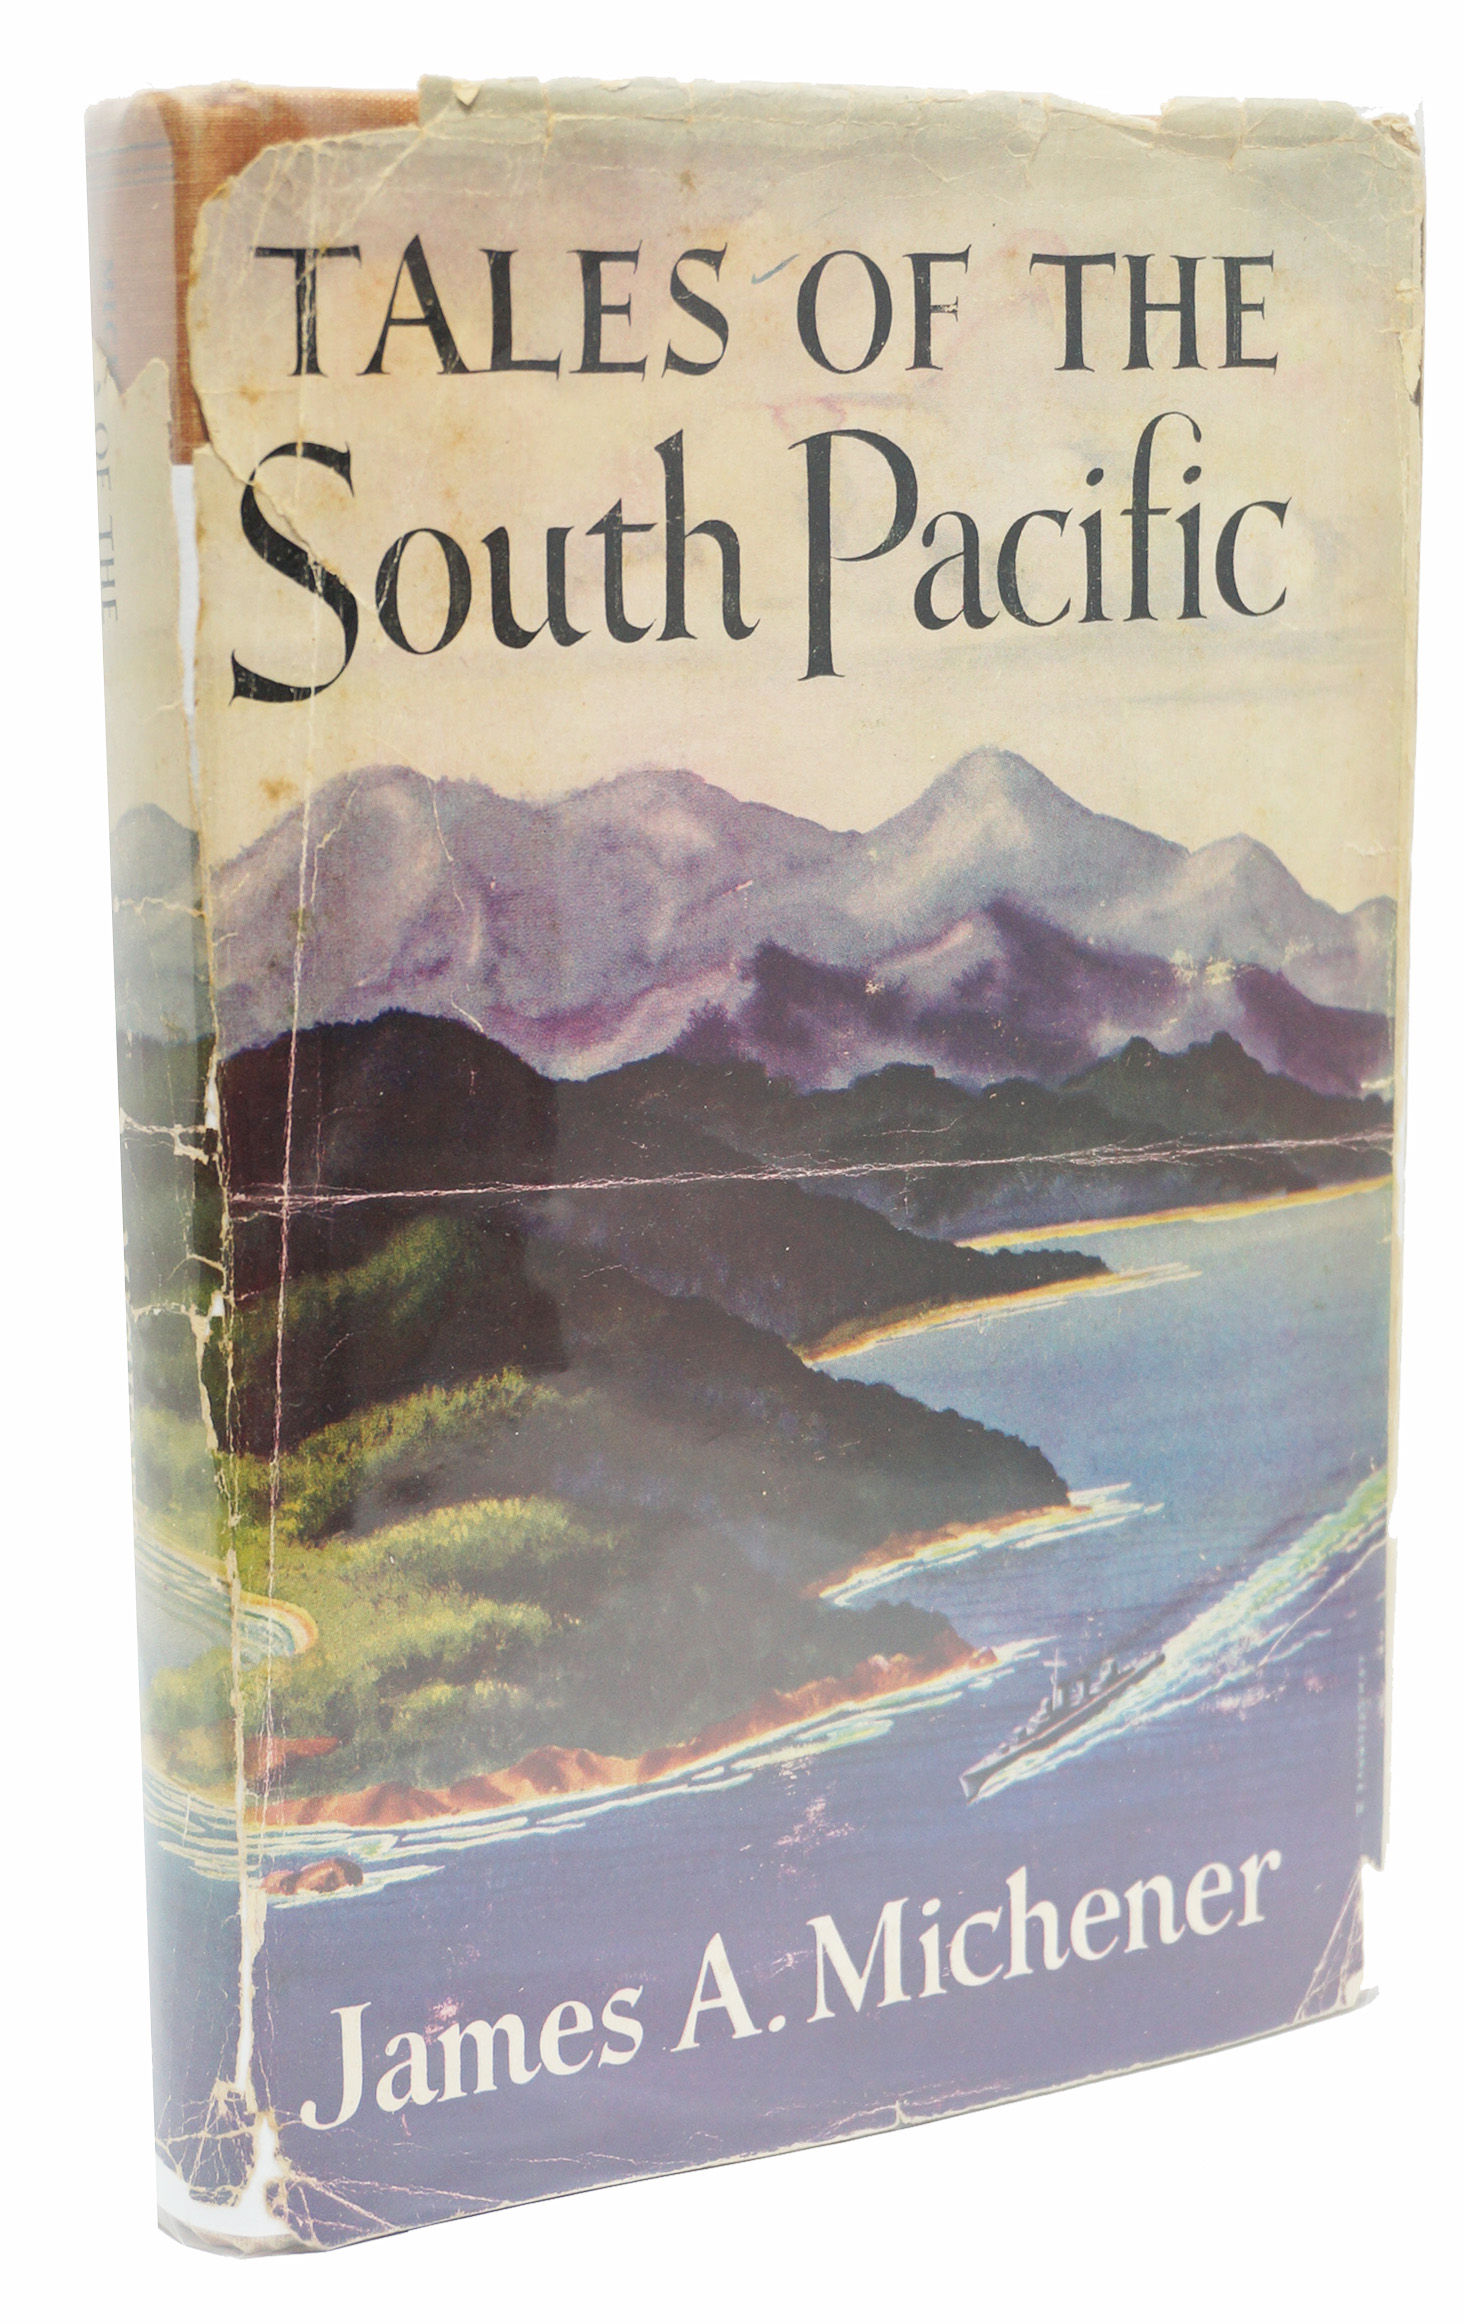 Michener, James A. TALES OF THE SOUTH PACIFIC 1st Edition Thus 1st Printing